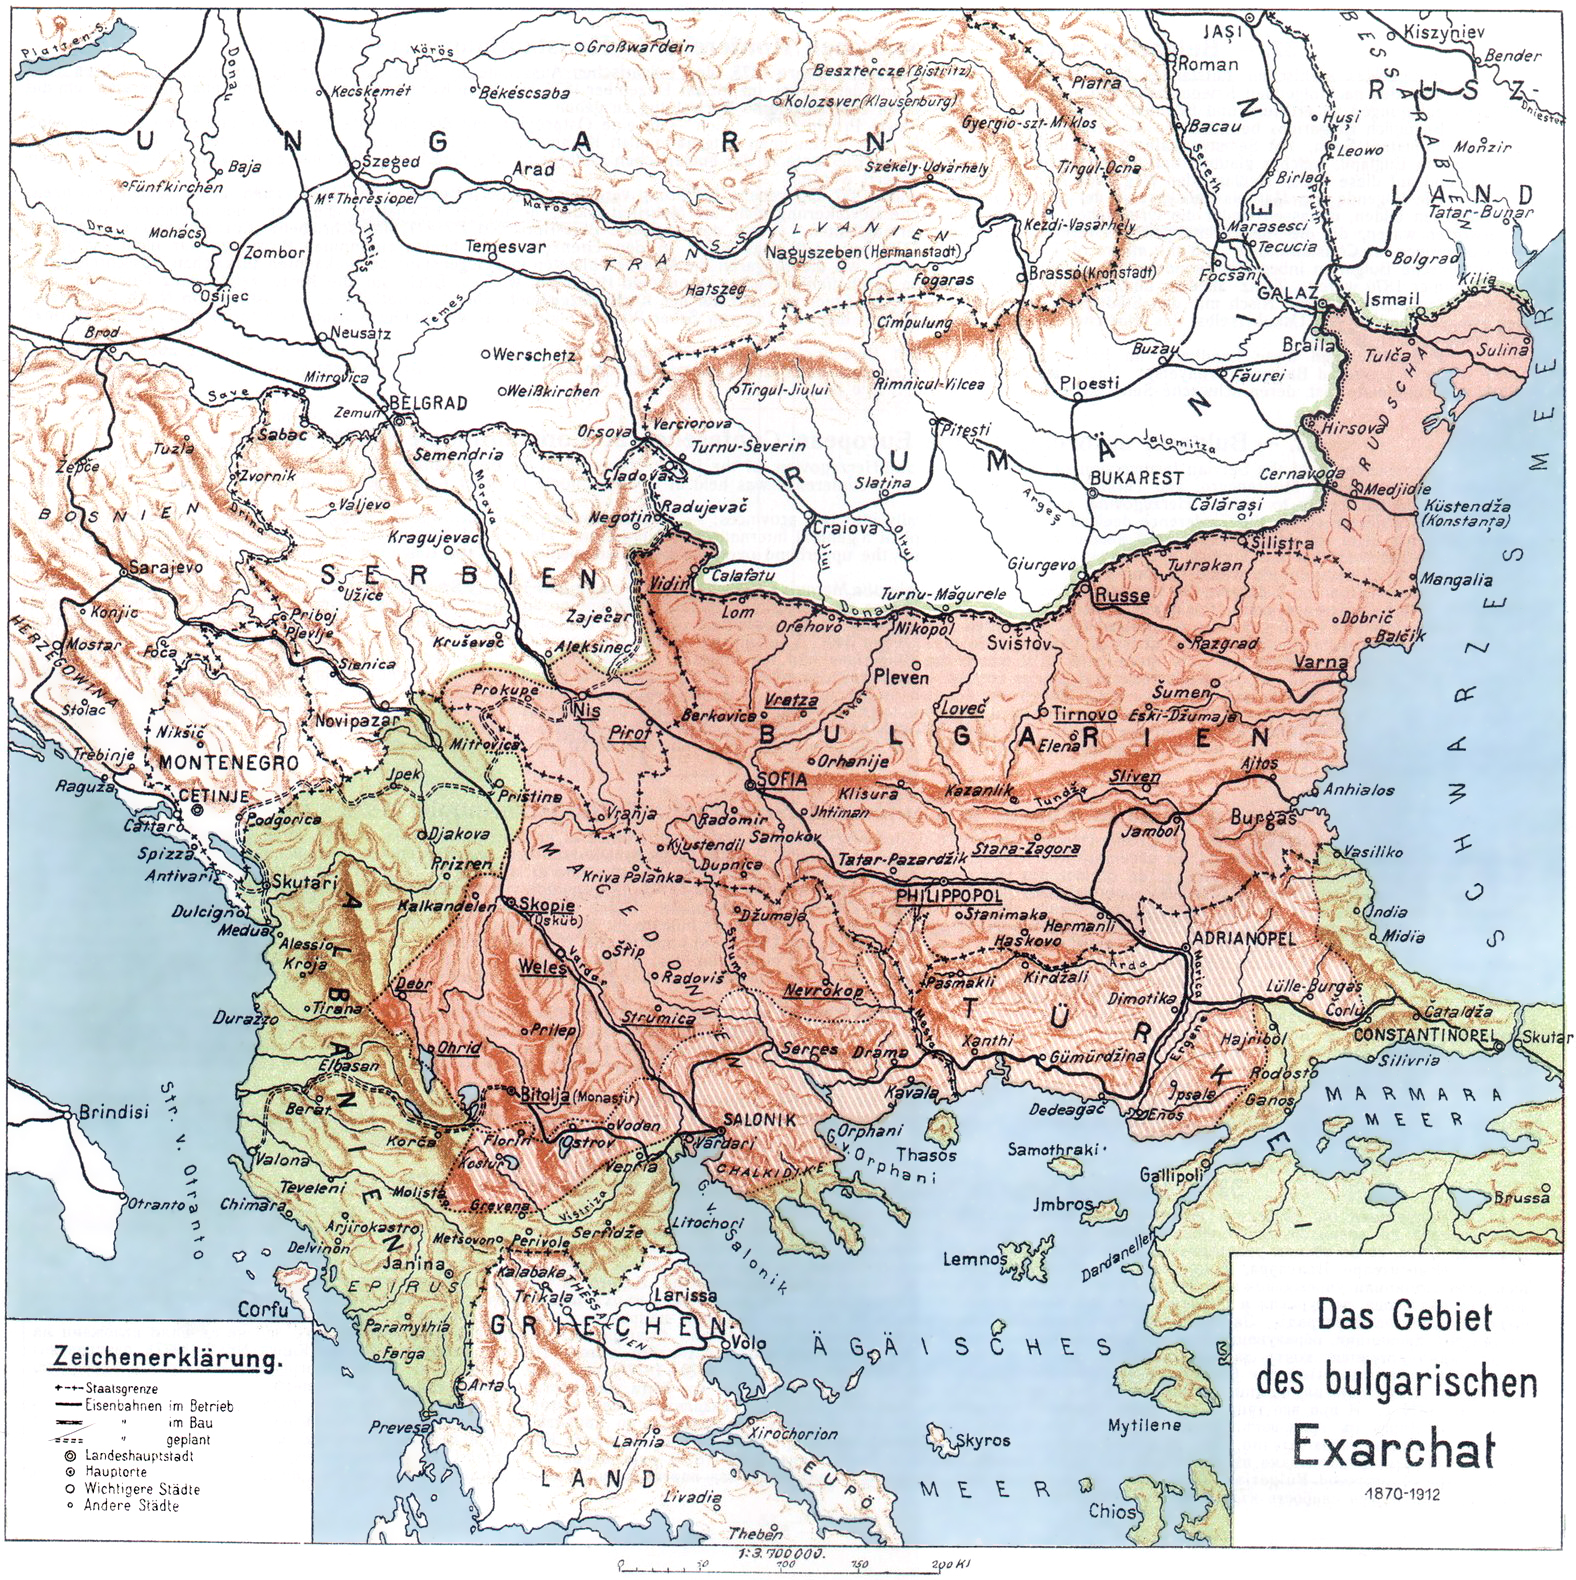 Bulgarian-Exarchate-1870-1913